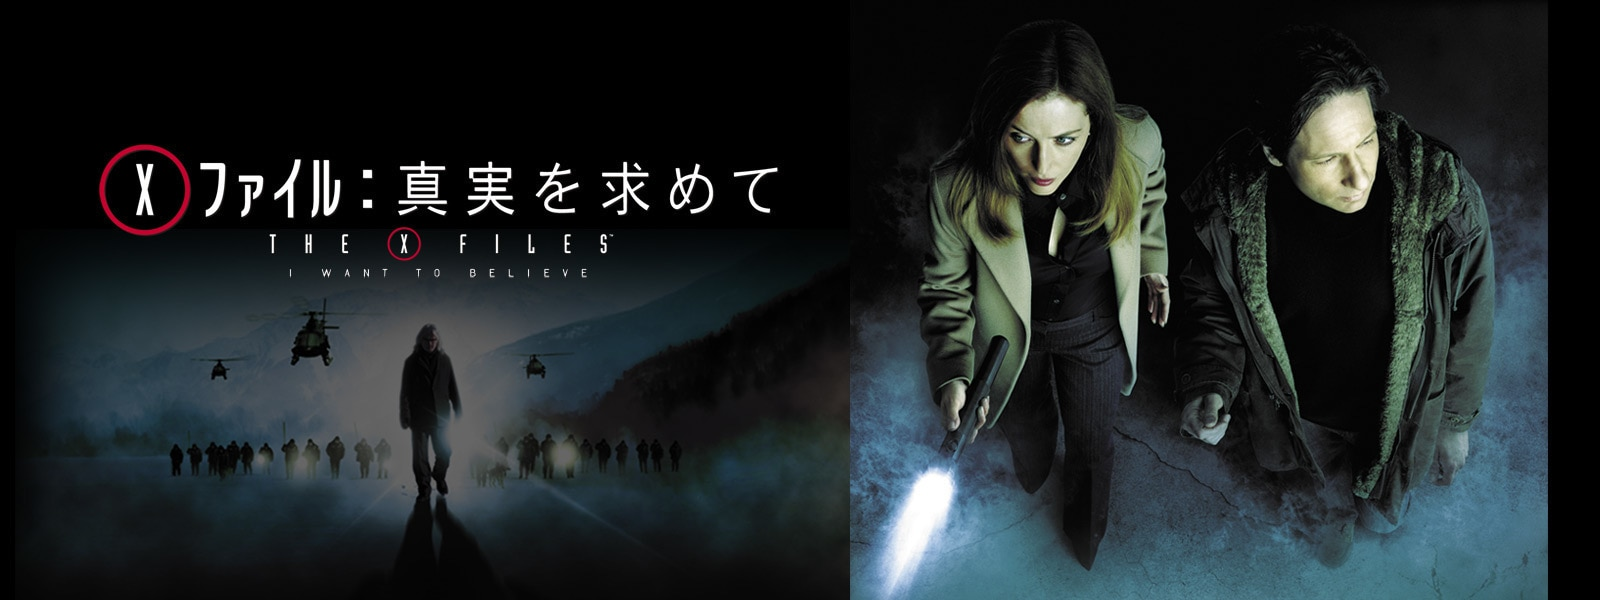 X-ファイル:真実を求めて X-Files: I Want to Believe, The Hero Object